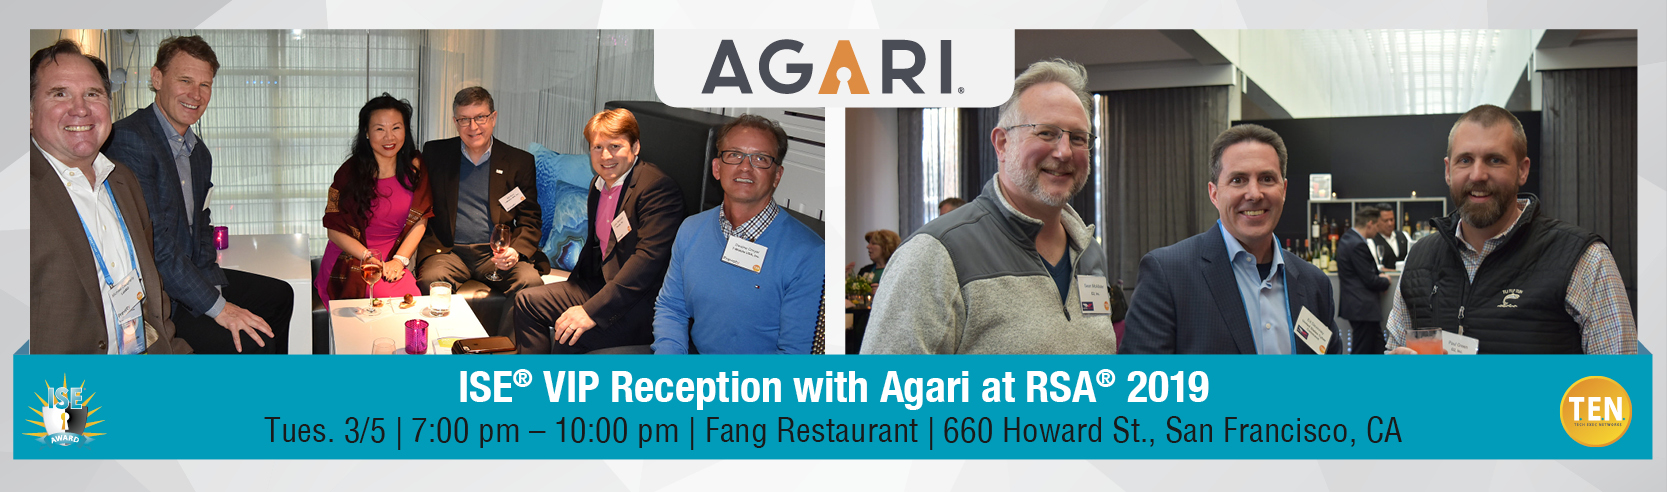 ISE® VIP Reception with Agari